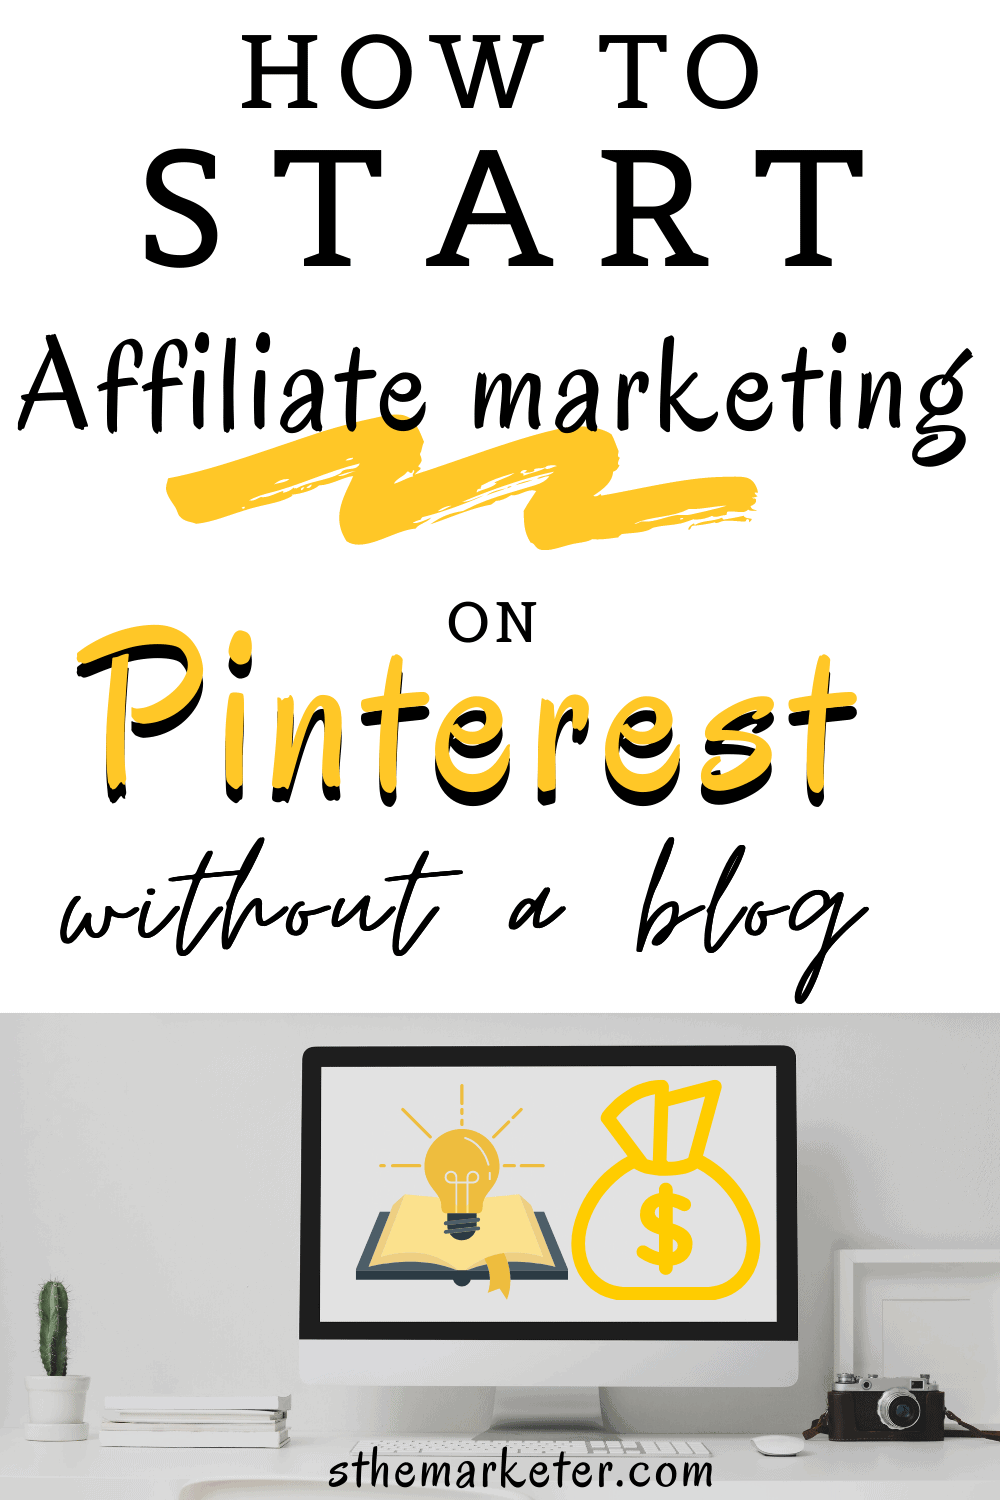 How to Start Affiliate Marketing on Pinterest Without a Blog